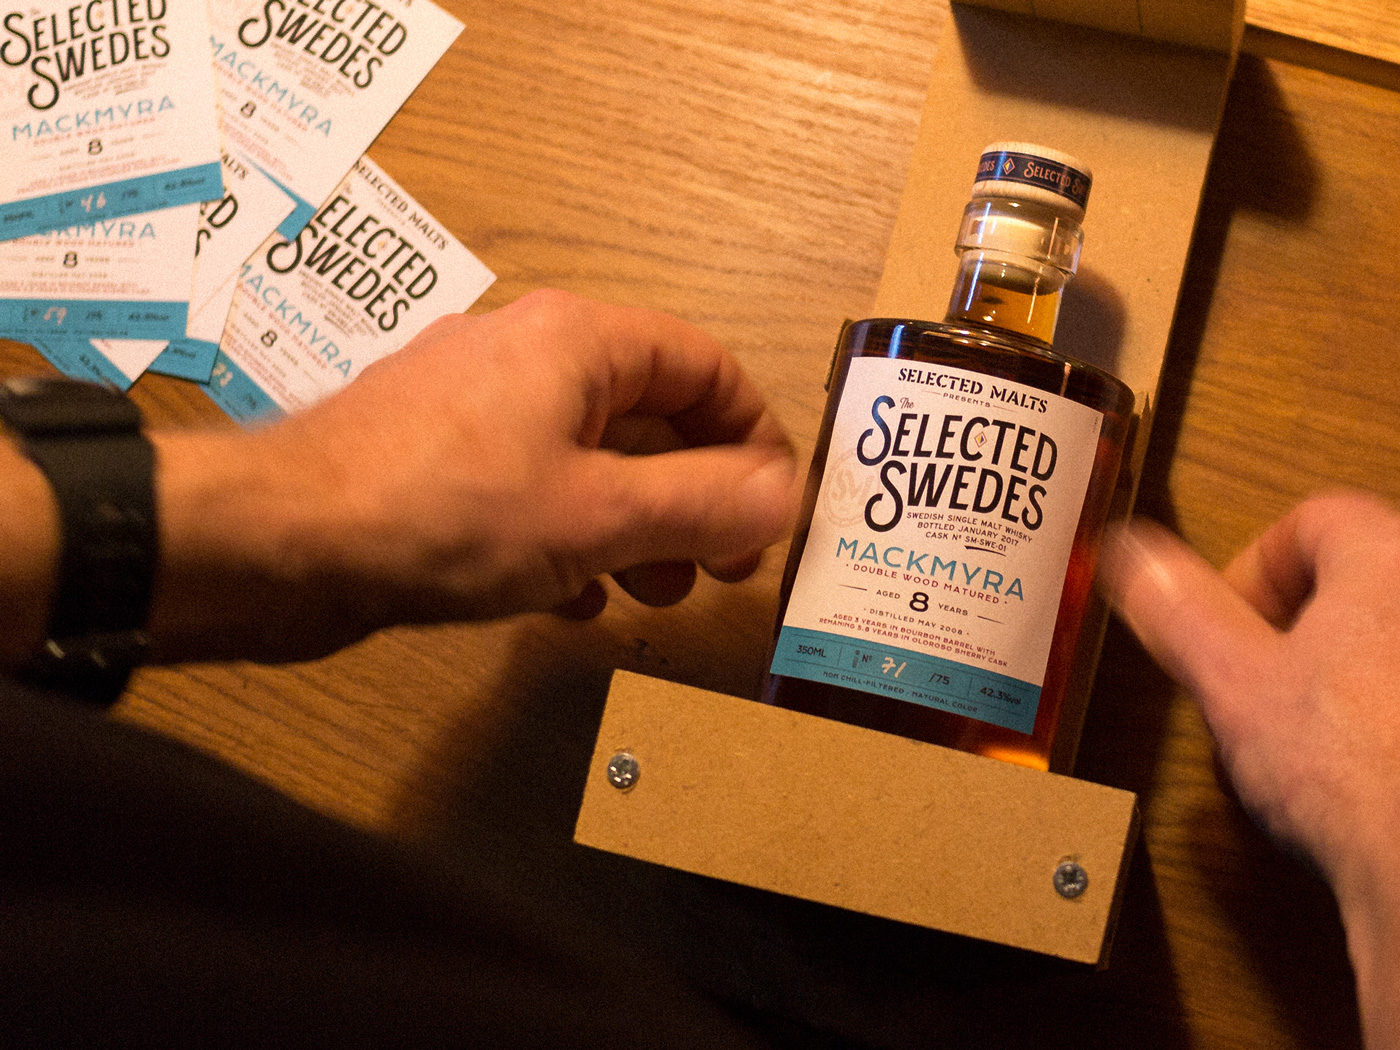 Selected Malts Selected Swedes Mackmyra Labels